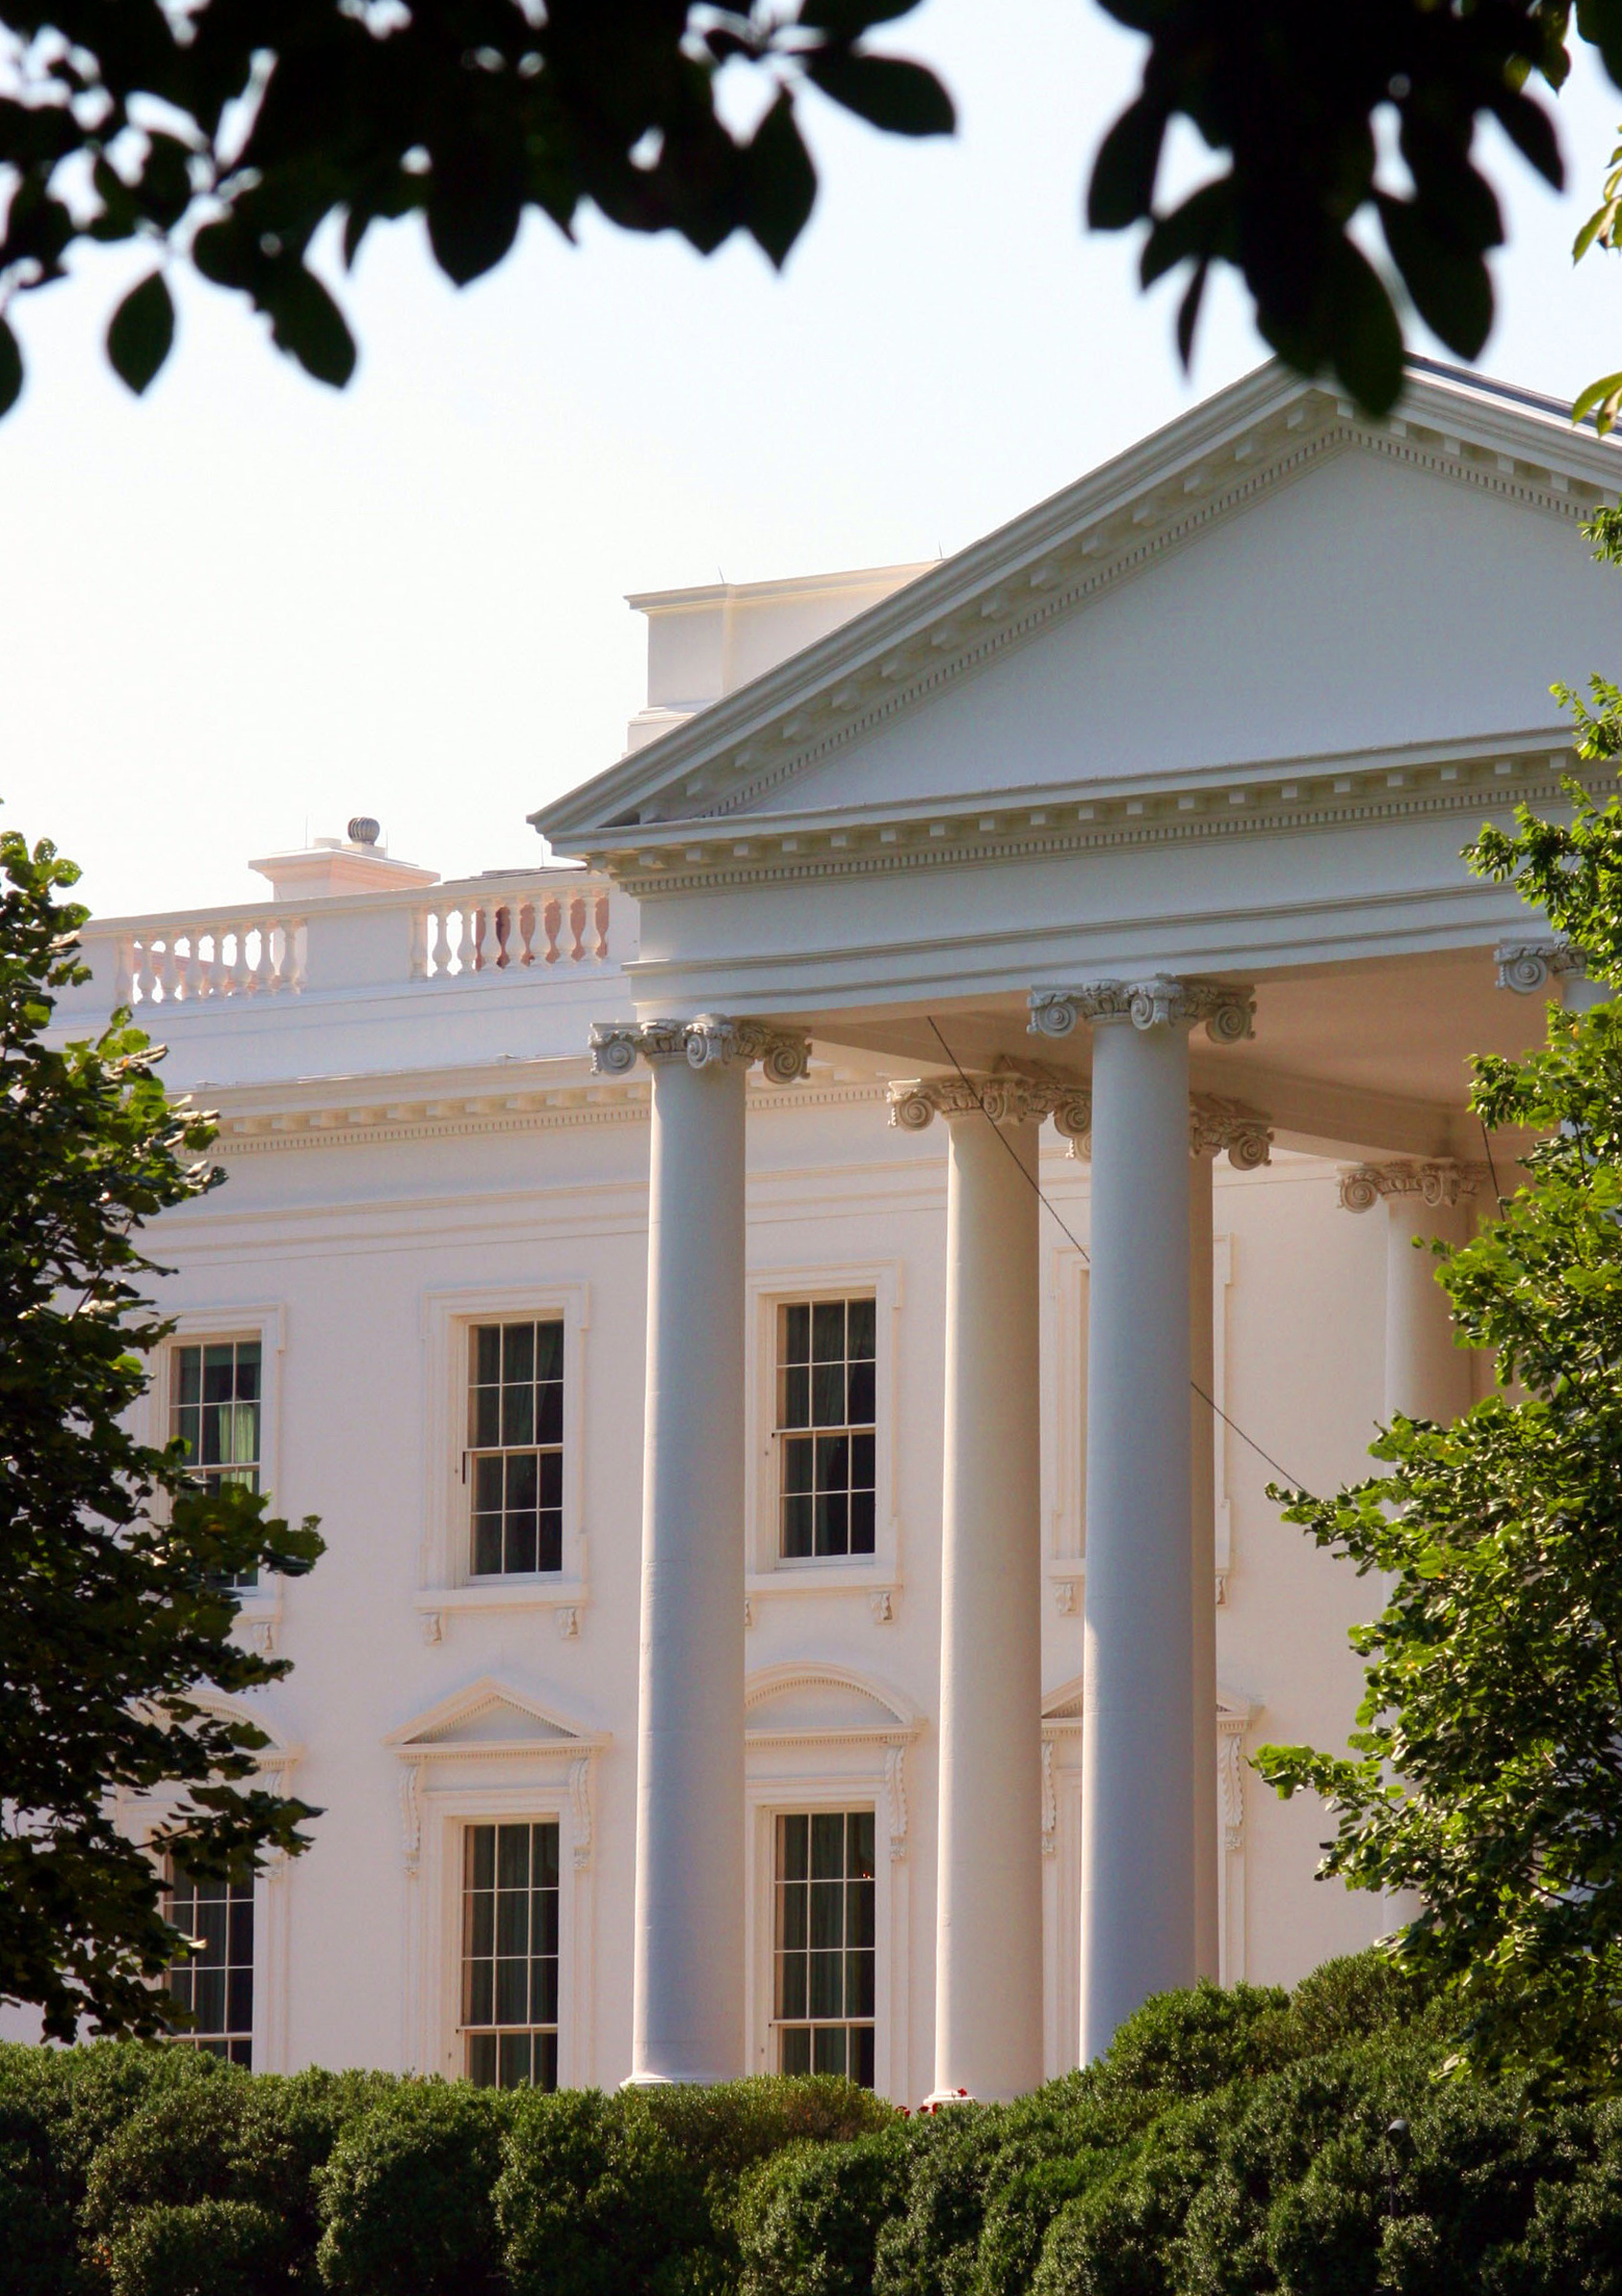 Close up of the White House